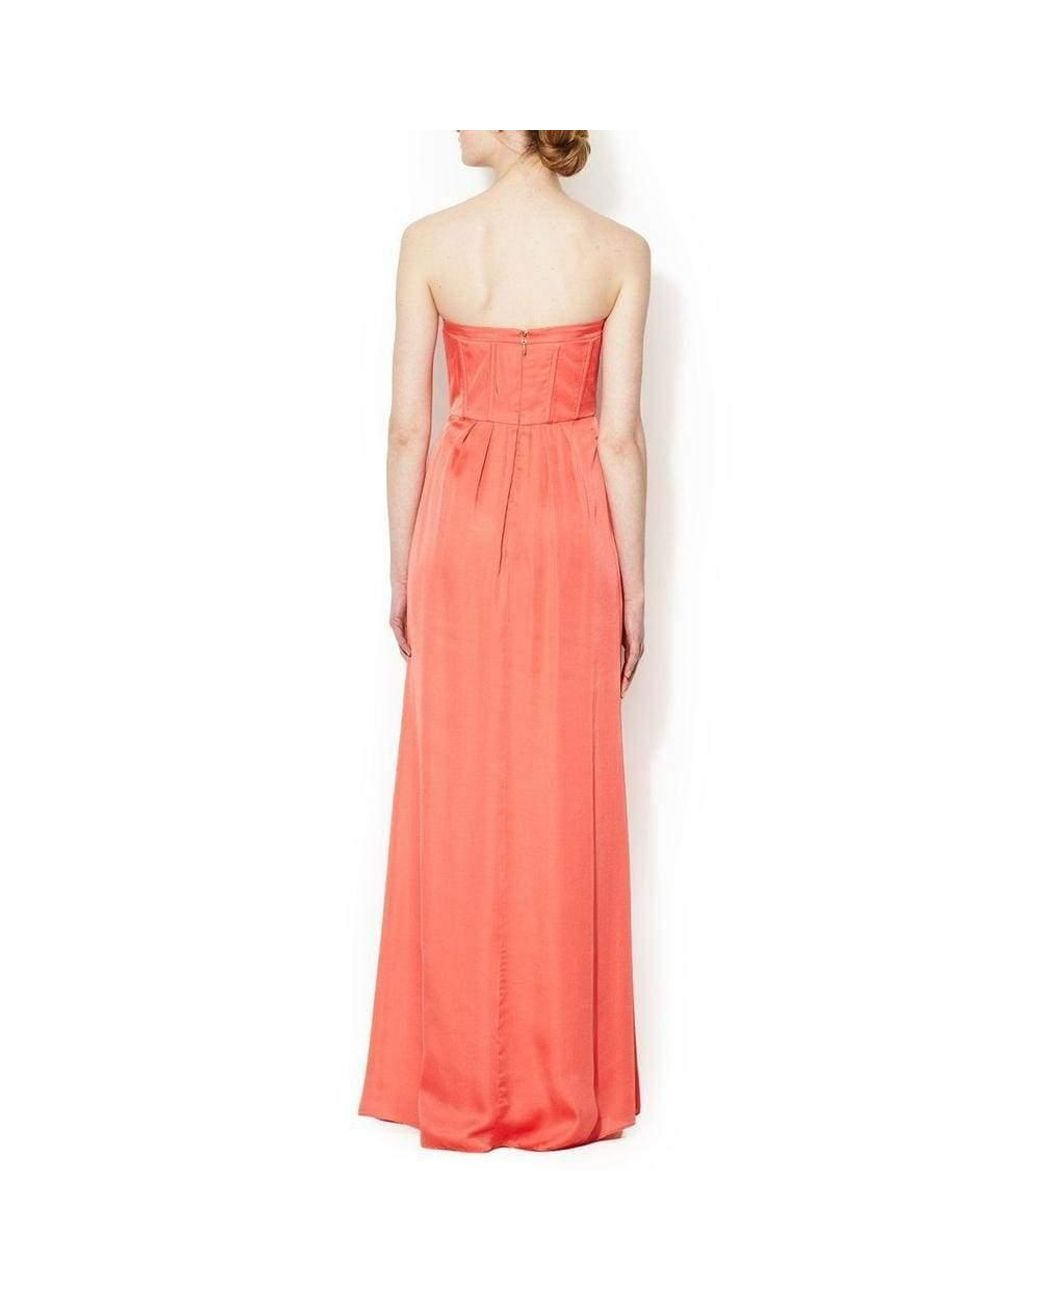 NEW BCBG Max Azria strapless corset cocktail pink salmon evening party dress